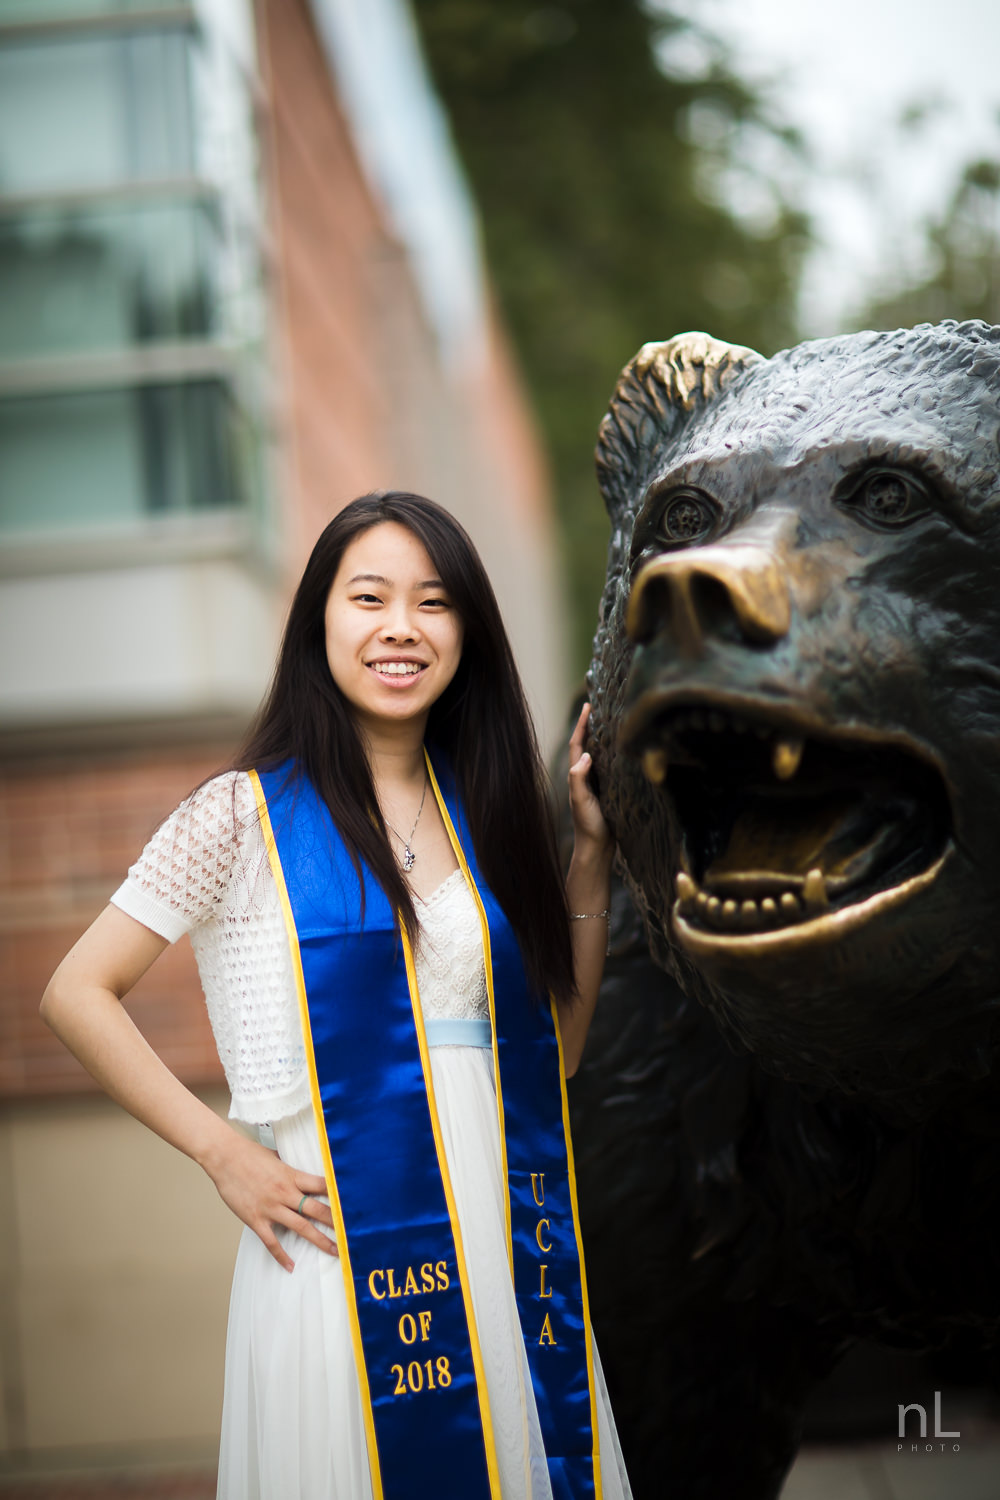 los-angeles-ucla-senior-graduation-portraits-9725.jpg